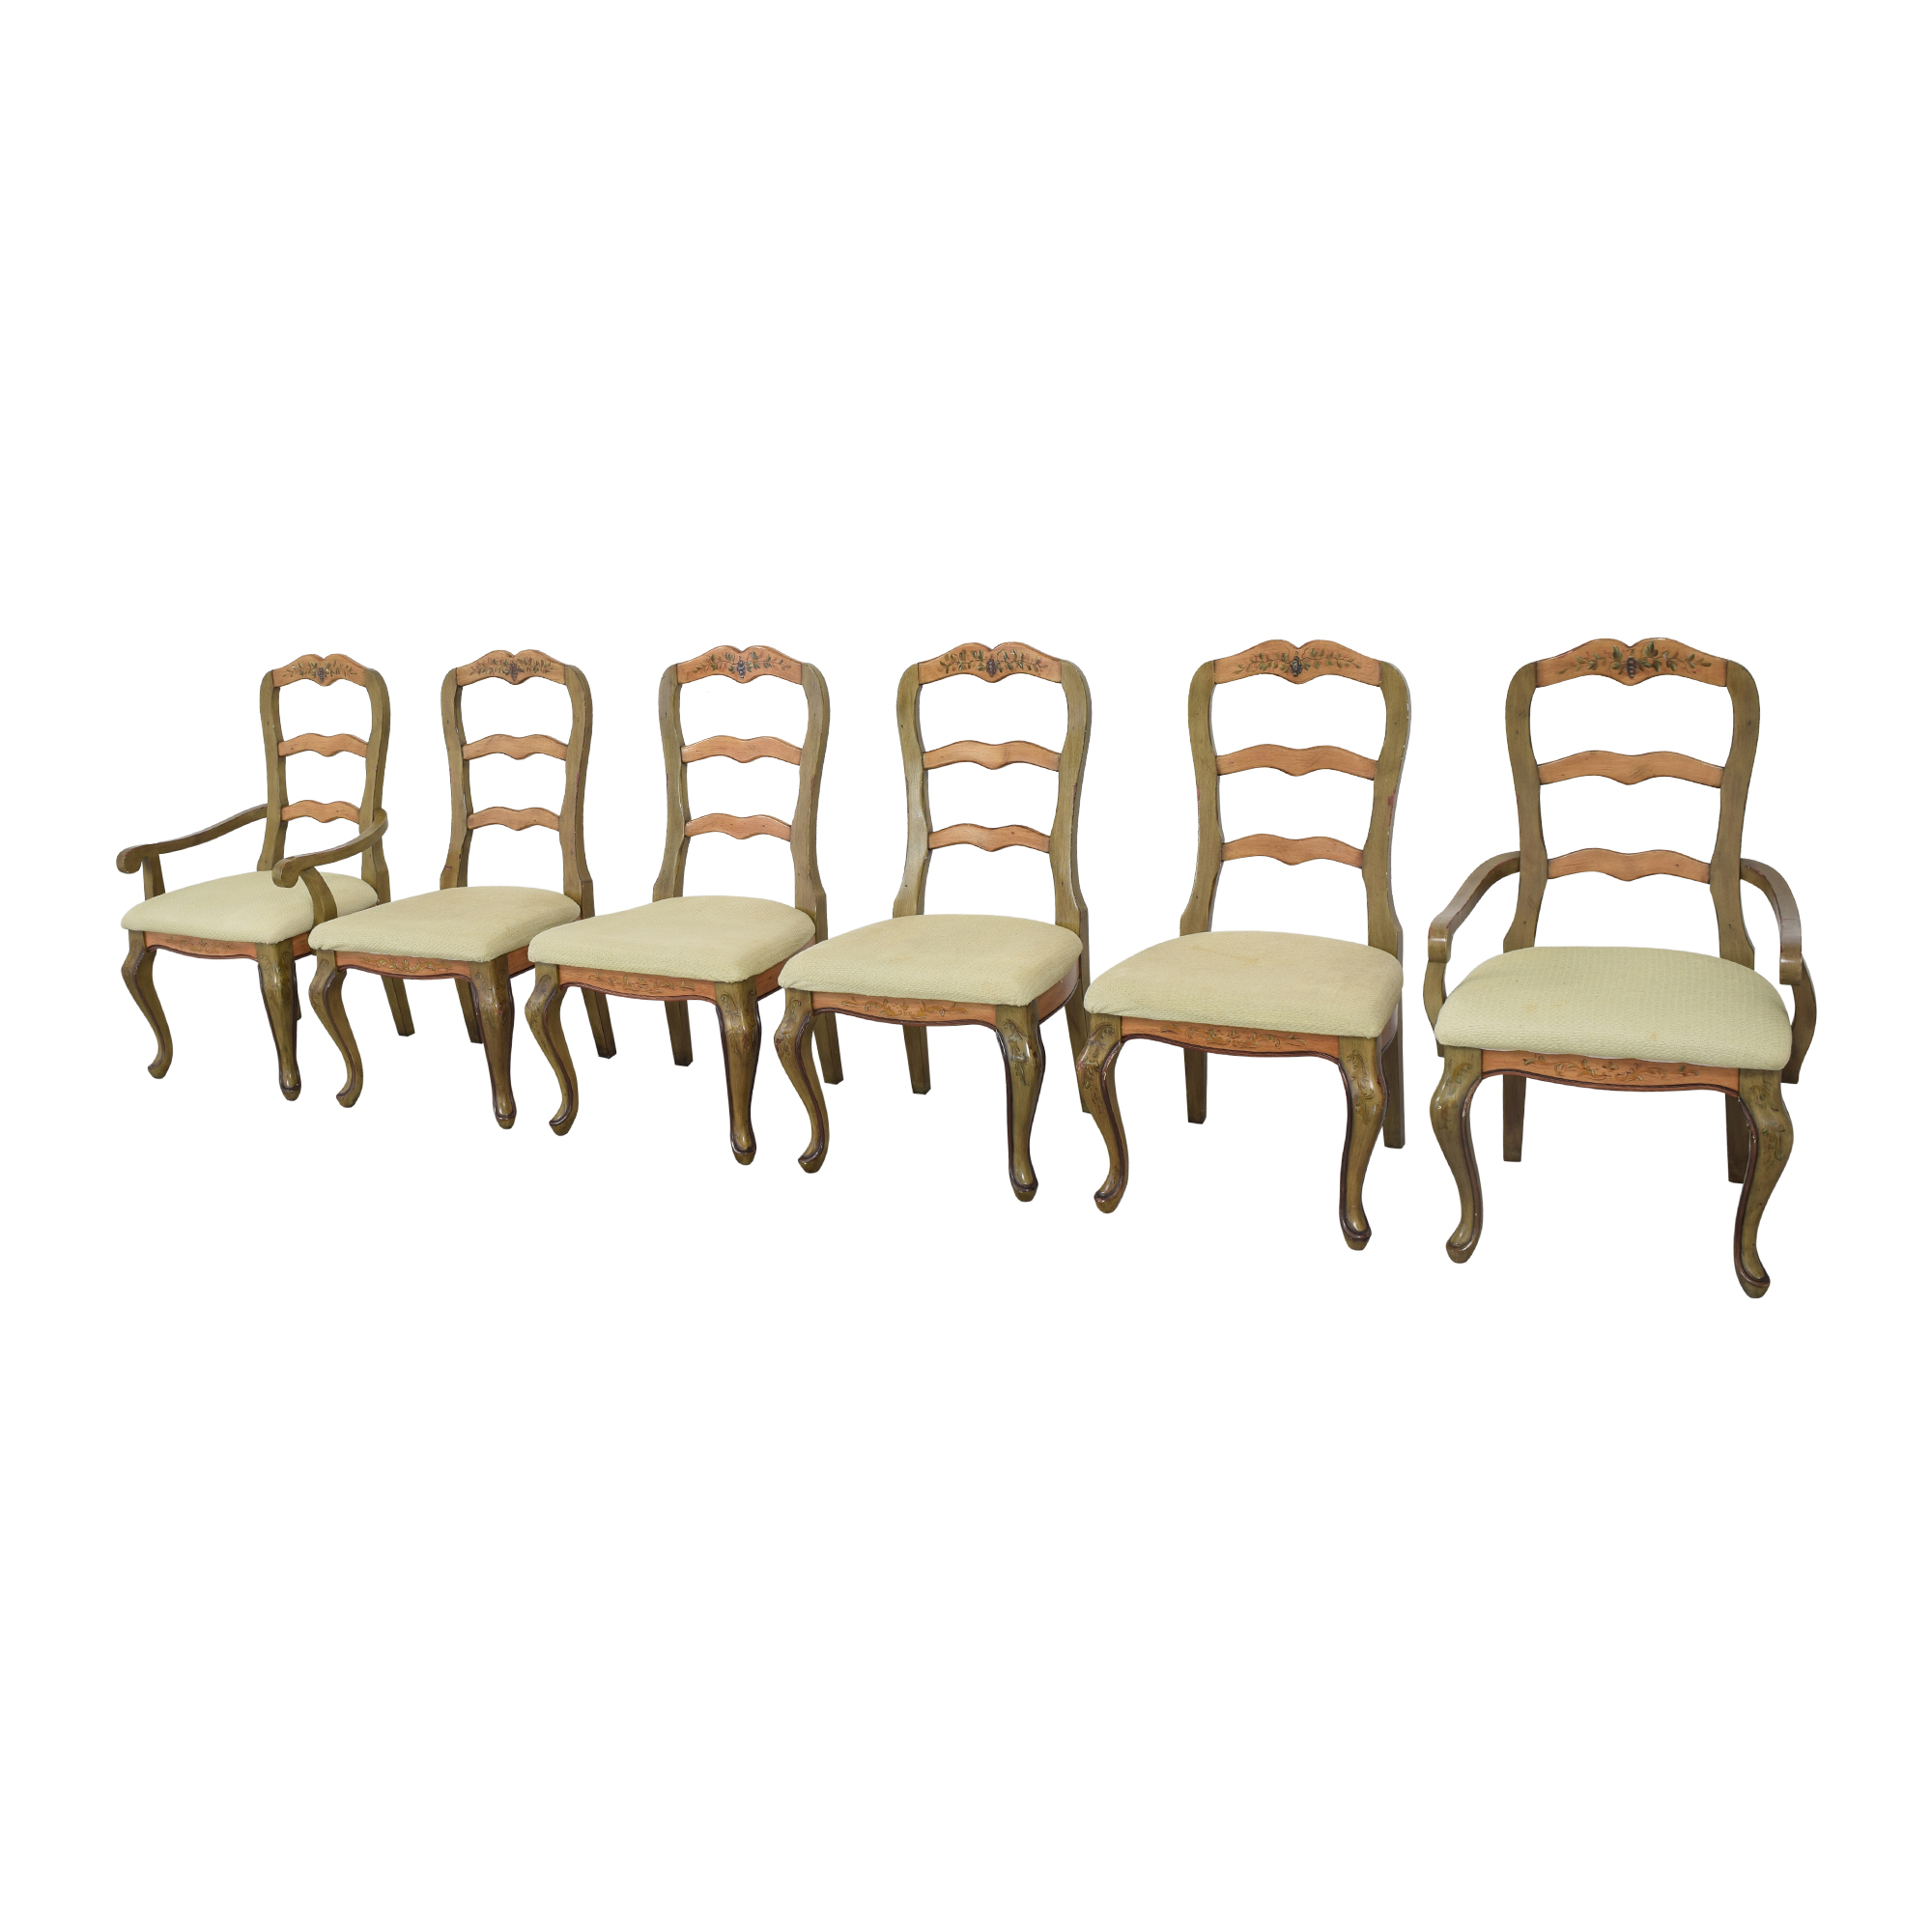 Painted French Country Style Dining Chairs ma